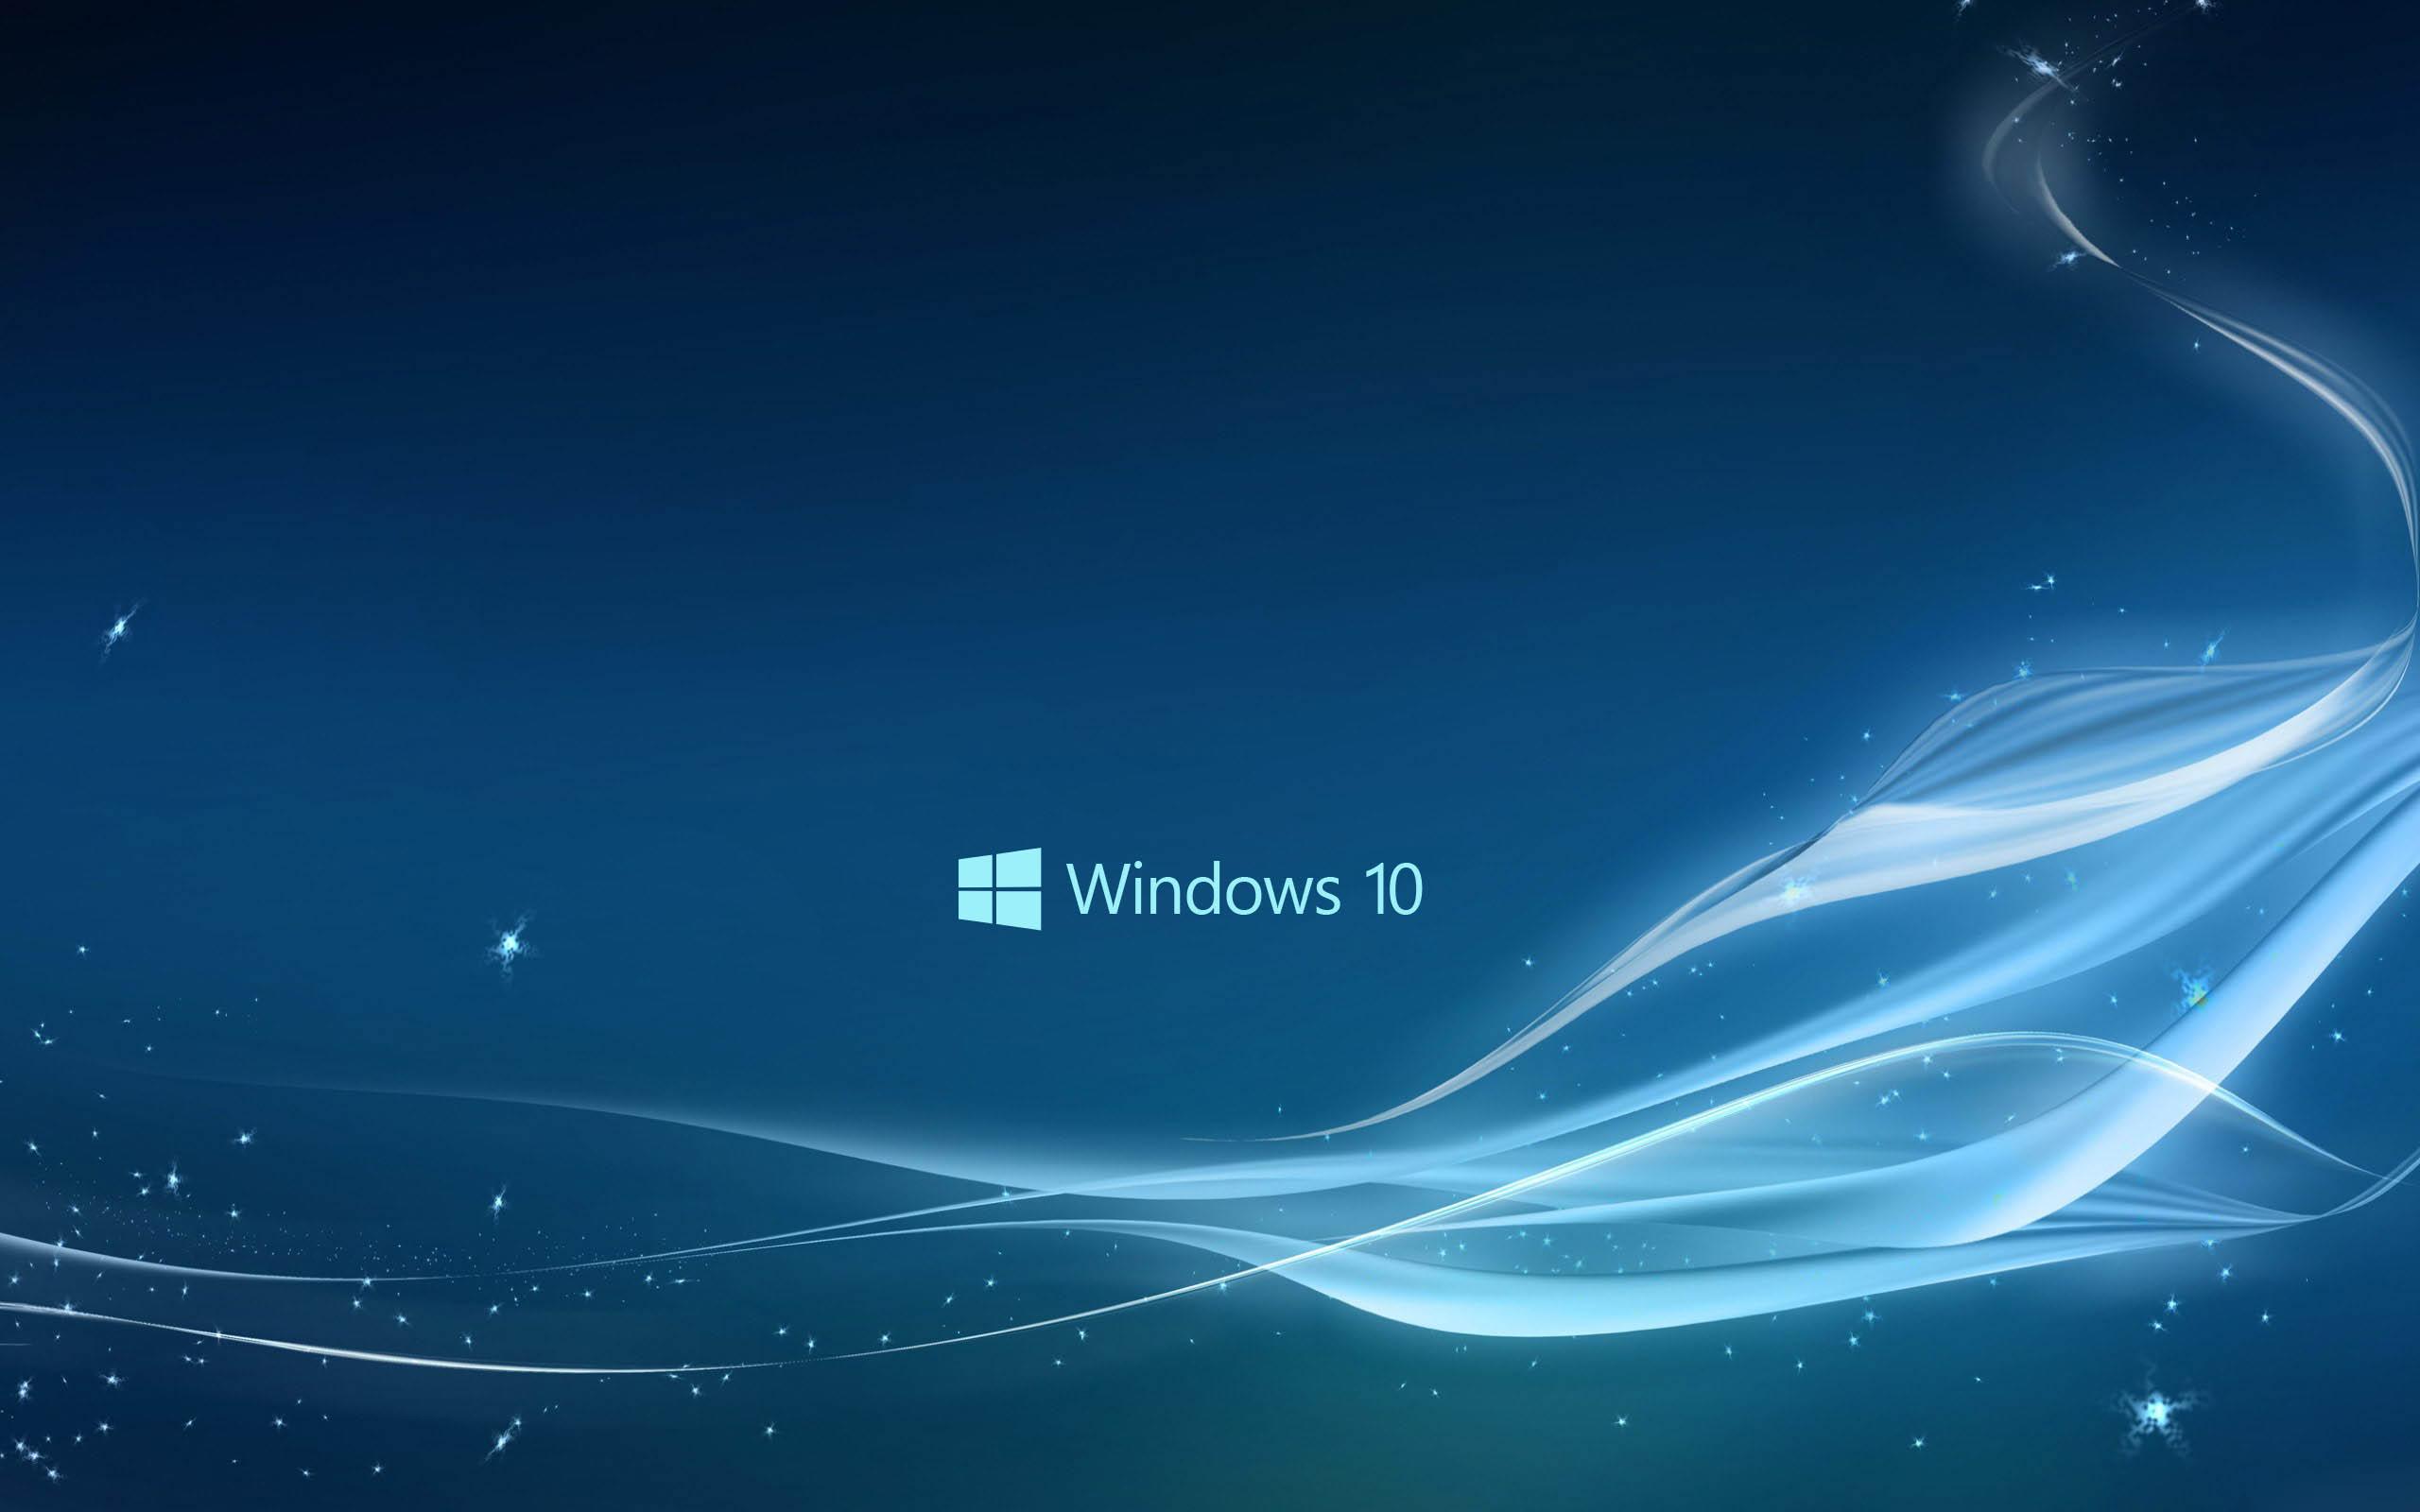 Windows 10 wallpaper 2560x1600